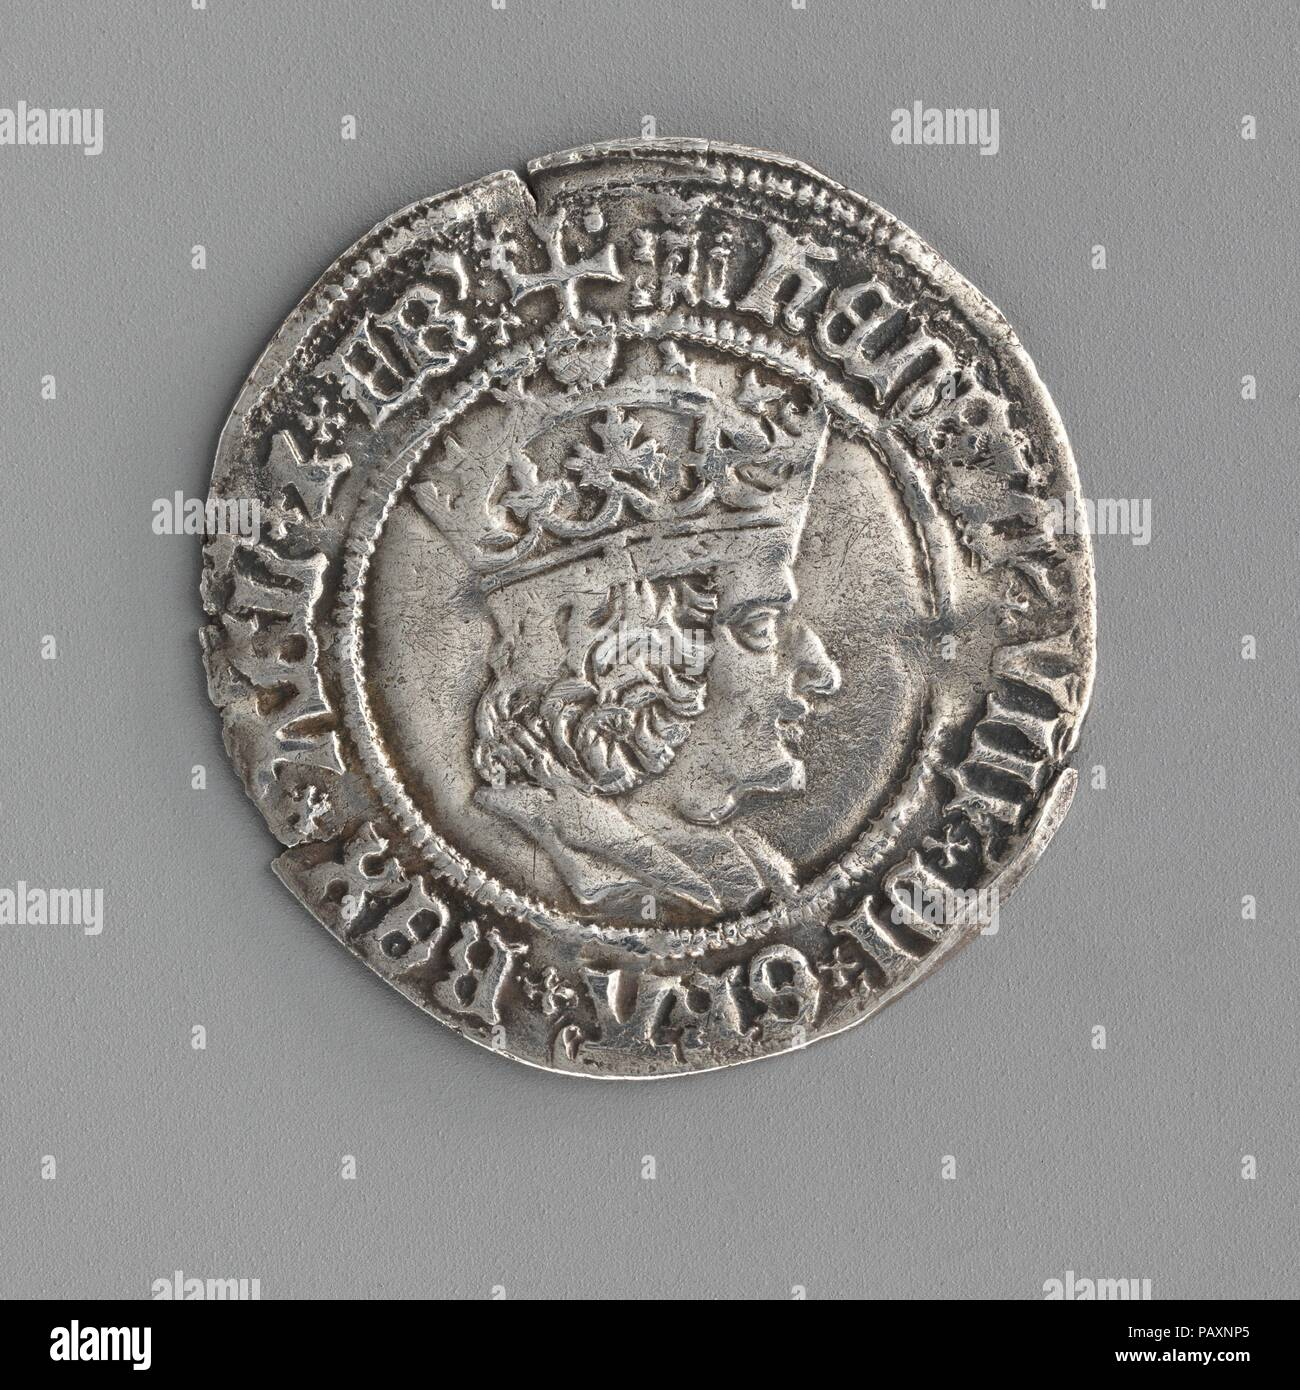 Groat of Henry VIII (first coinage). Culture: British. Dimensions: Diameter: 15/16 in. (24 mm). Date: 1509-26. Museum: Metropolitan Museum of Art, New York, USA. - Stock Image